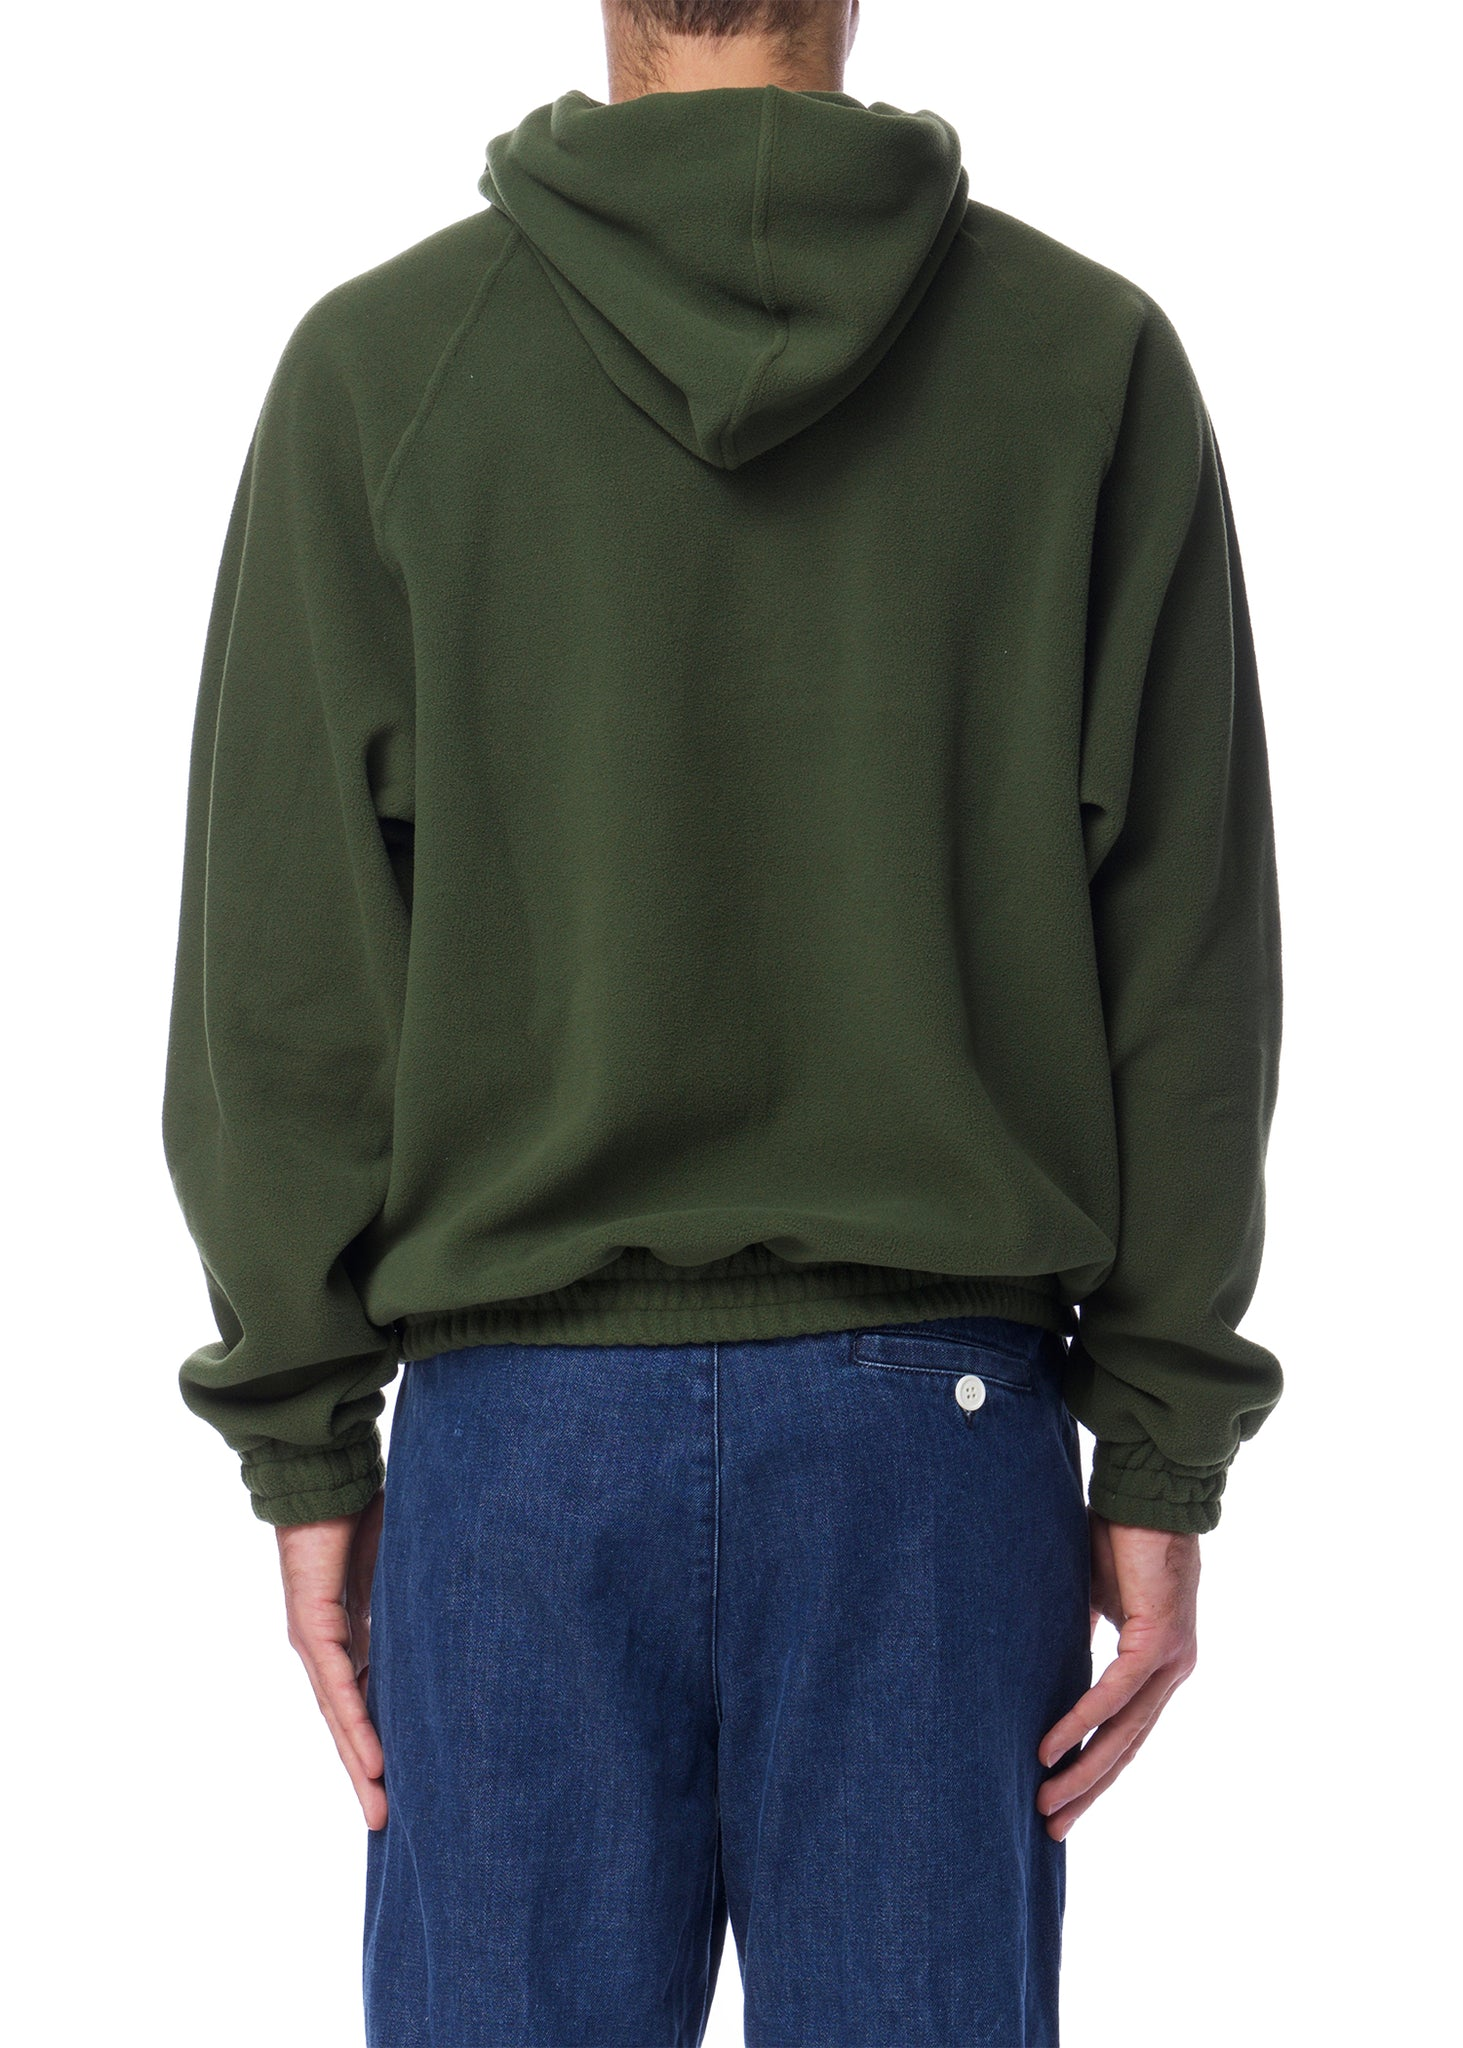 Chandail à Capuche en Polaire Vert|Green Polar Fleece Hoodie